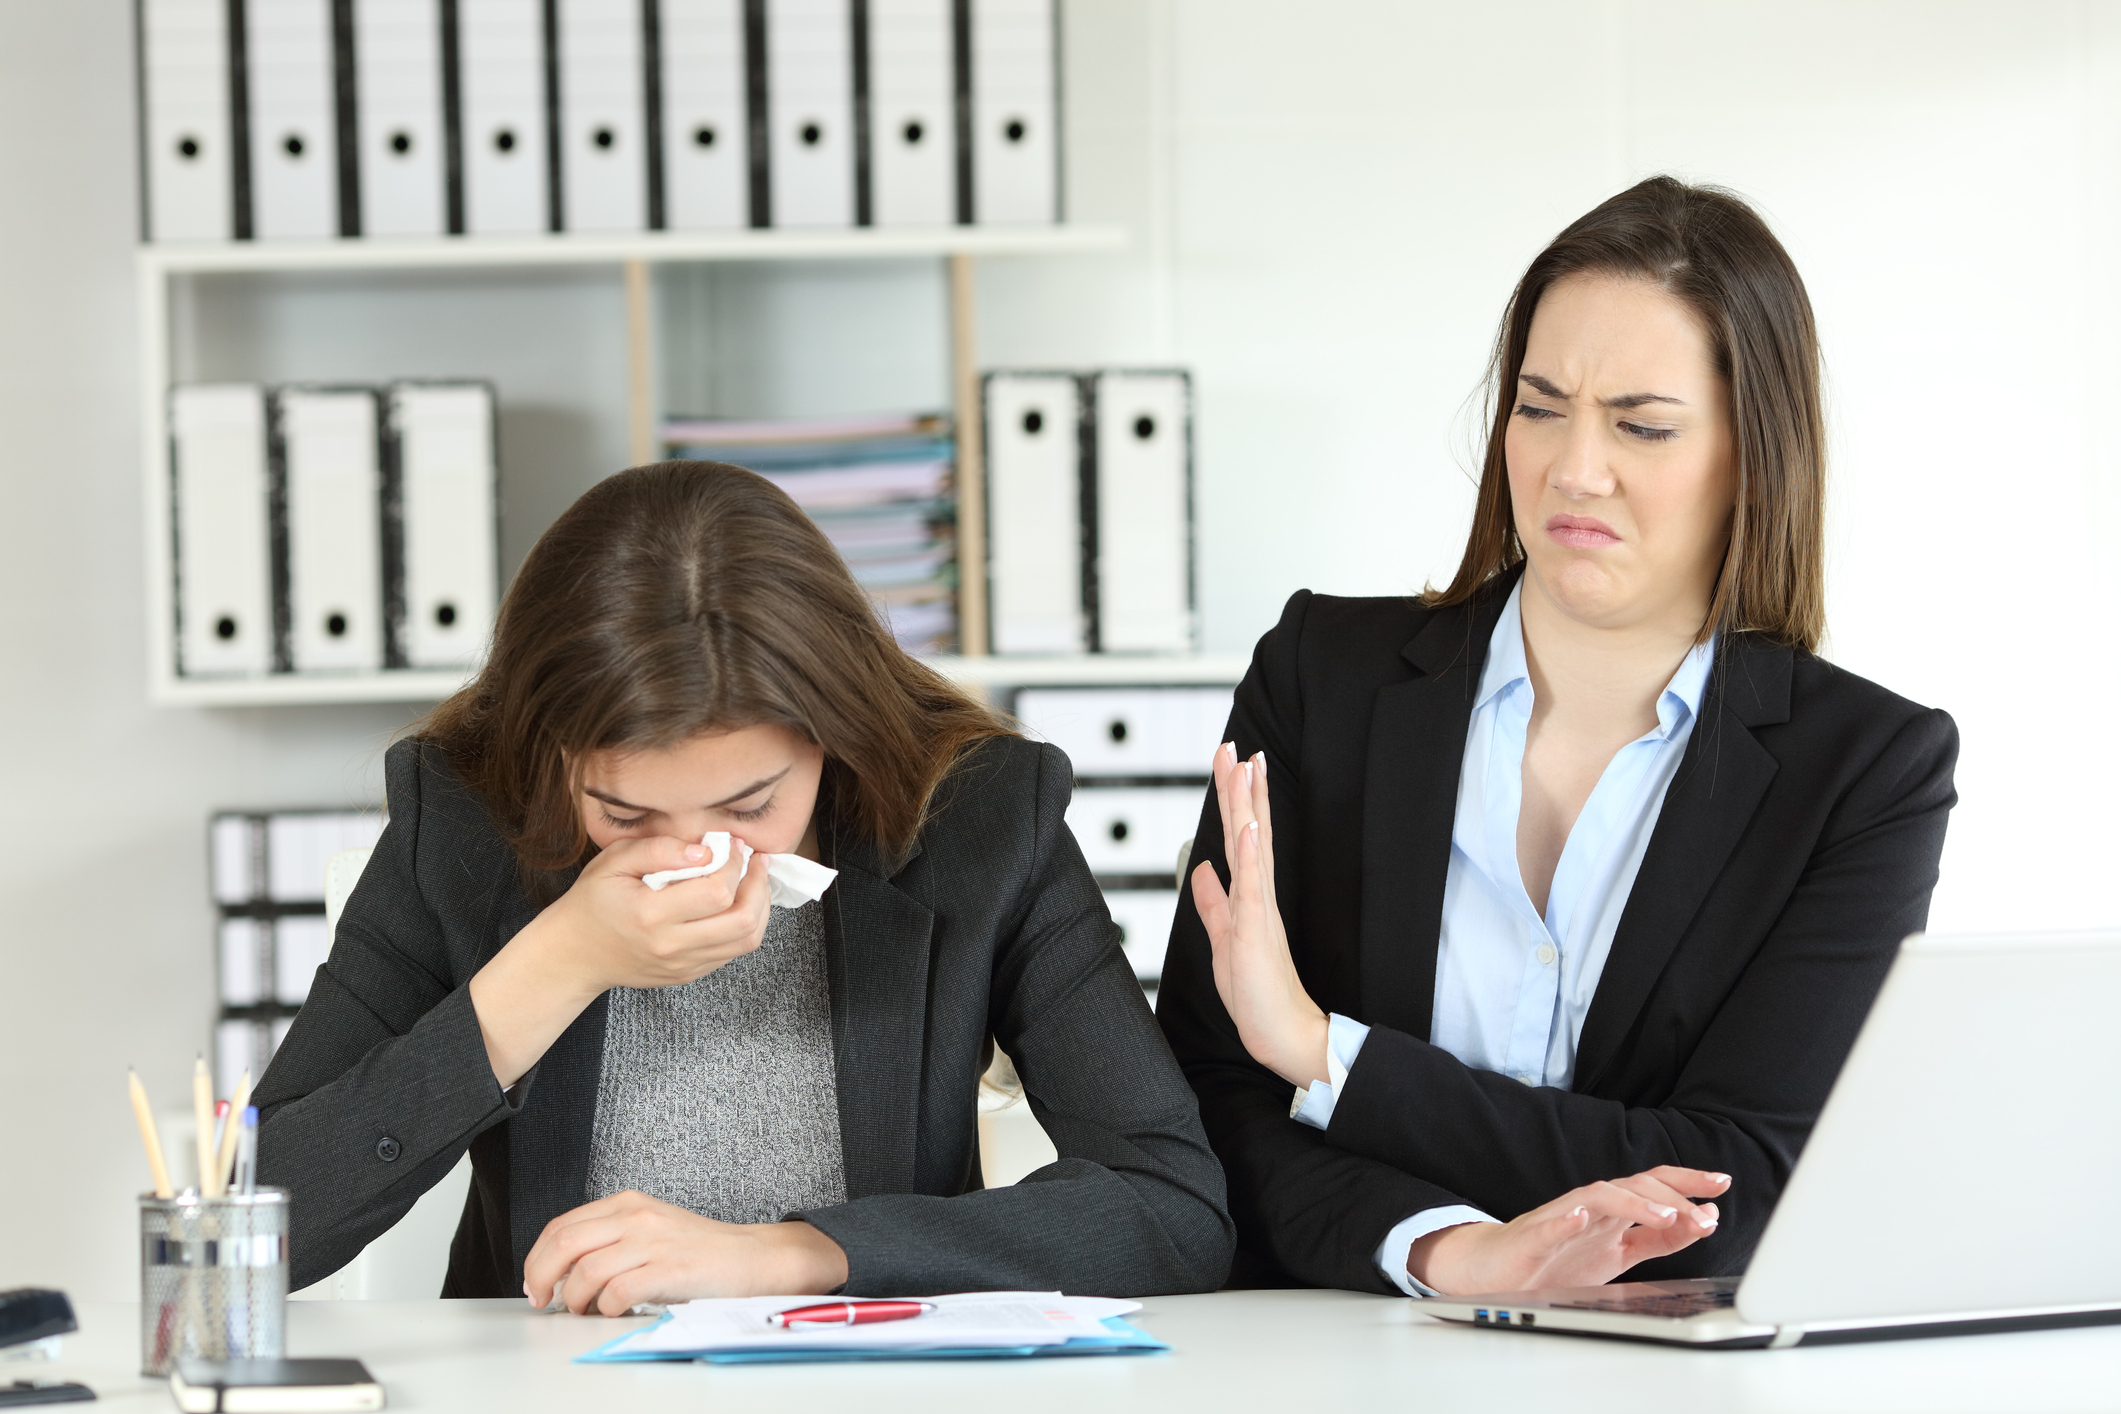 Woman sneezing in office beside co-worker who is trying to move away